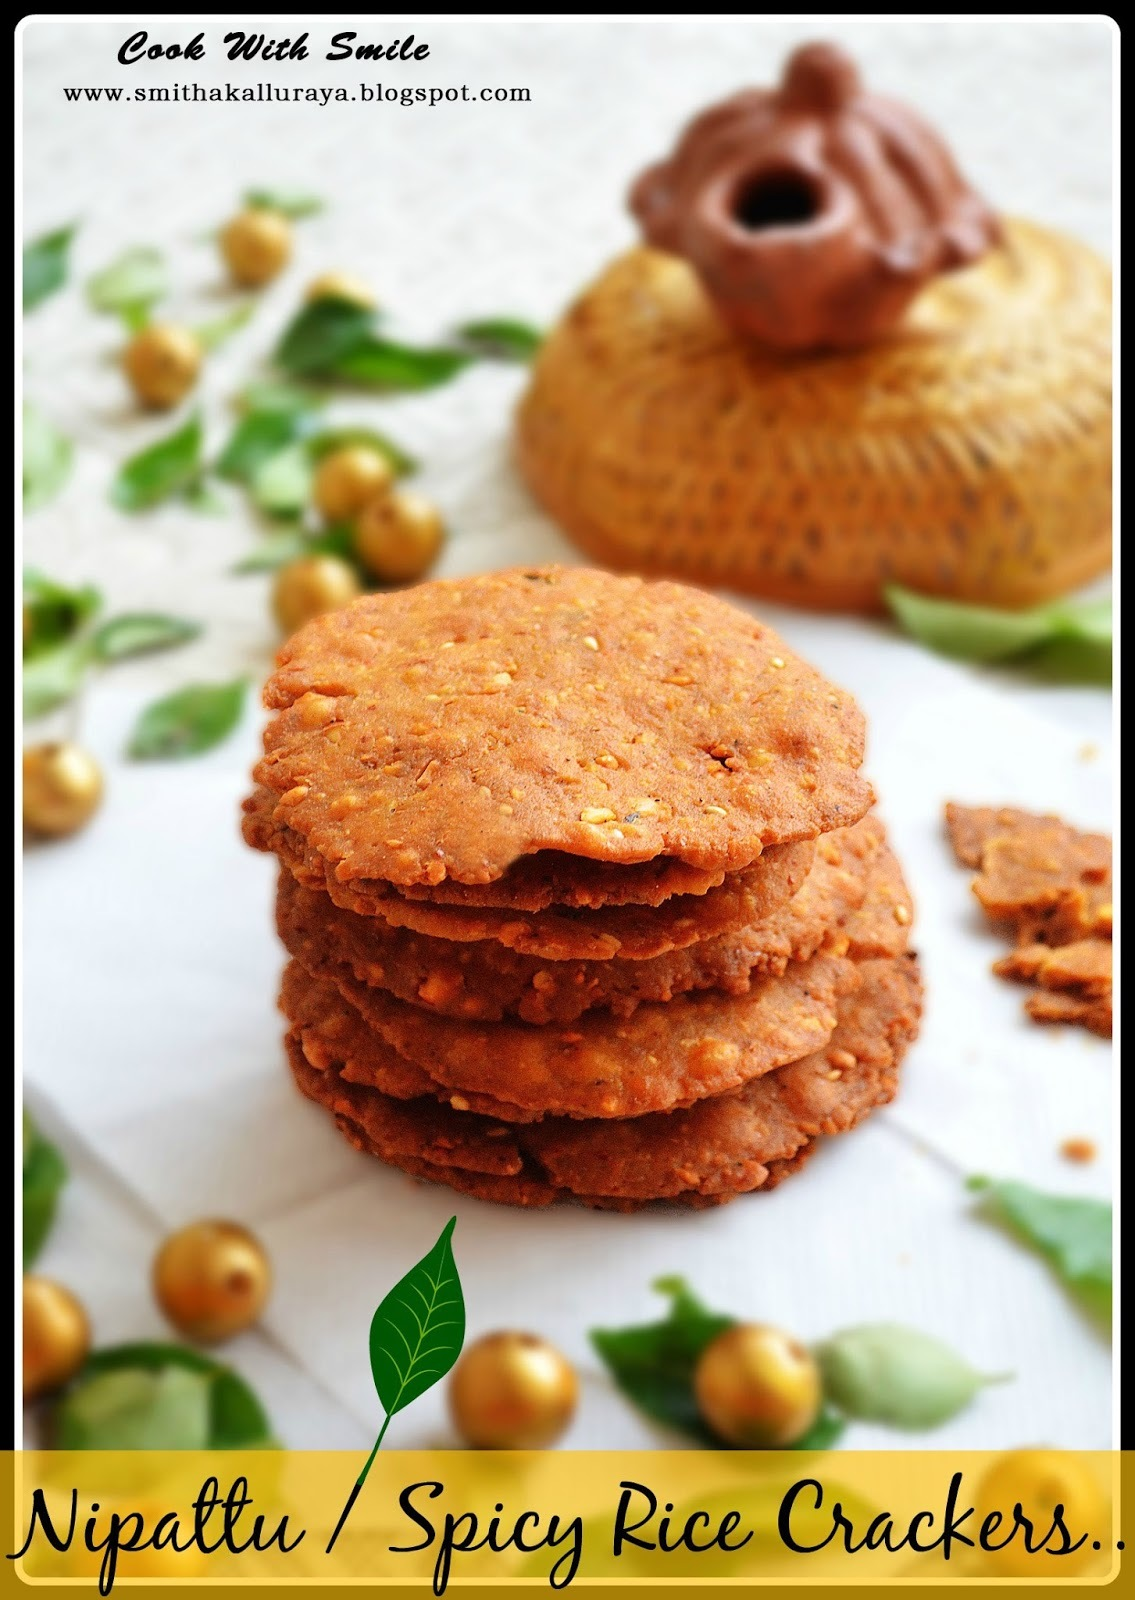 NIPPATTU / THATTAI / CHEKKALU RECIPE - SPICY RICE CRACKERS